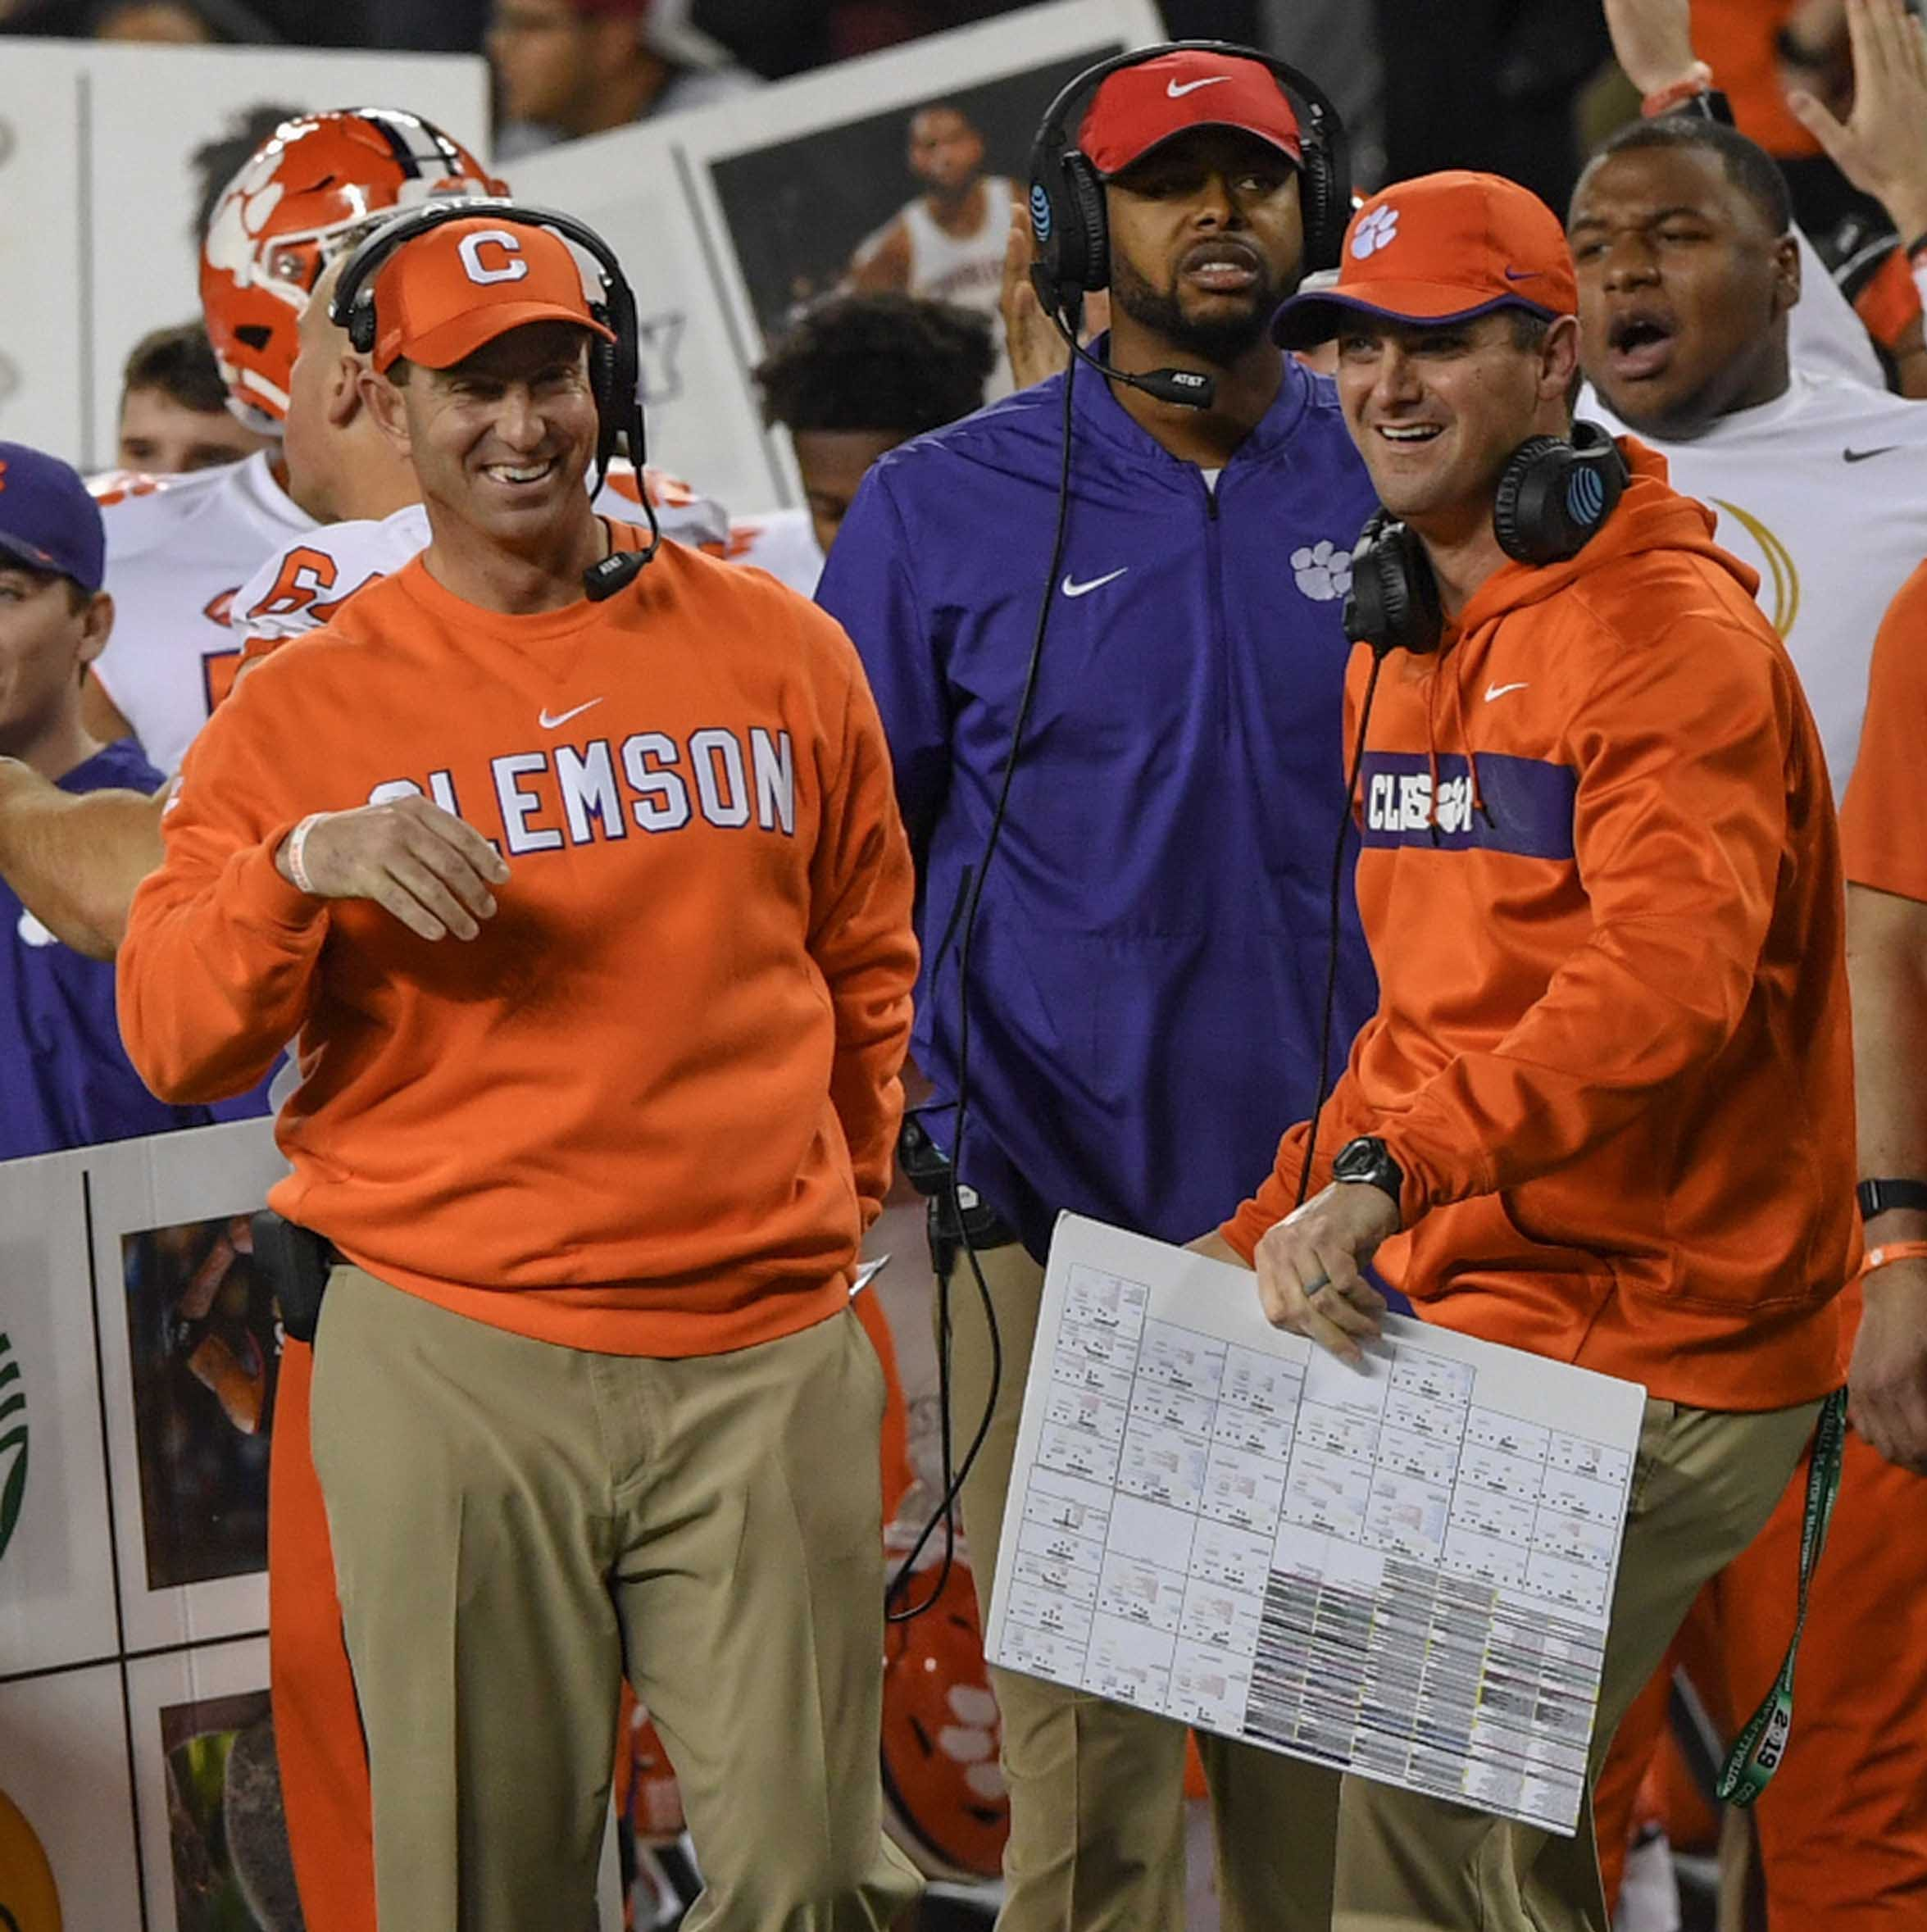 Clemson is already packed for another College Football Playoff trip